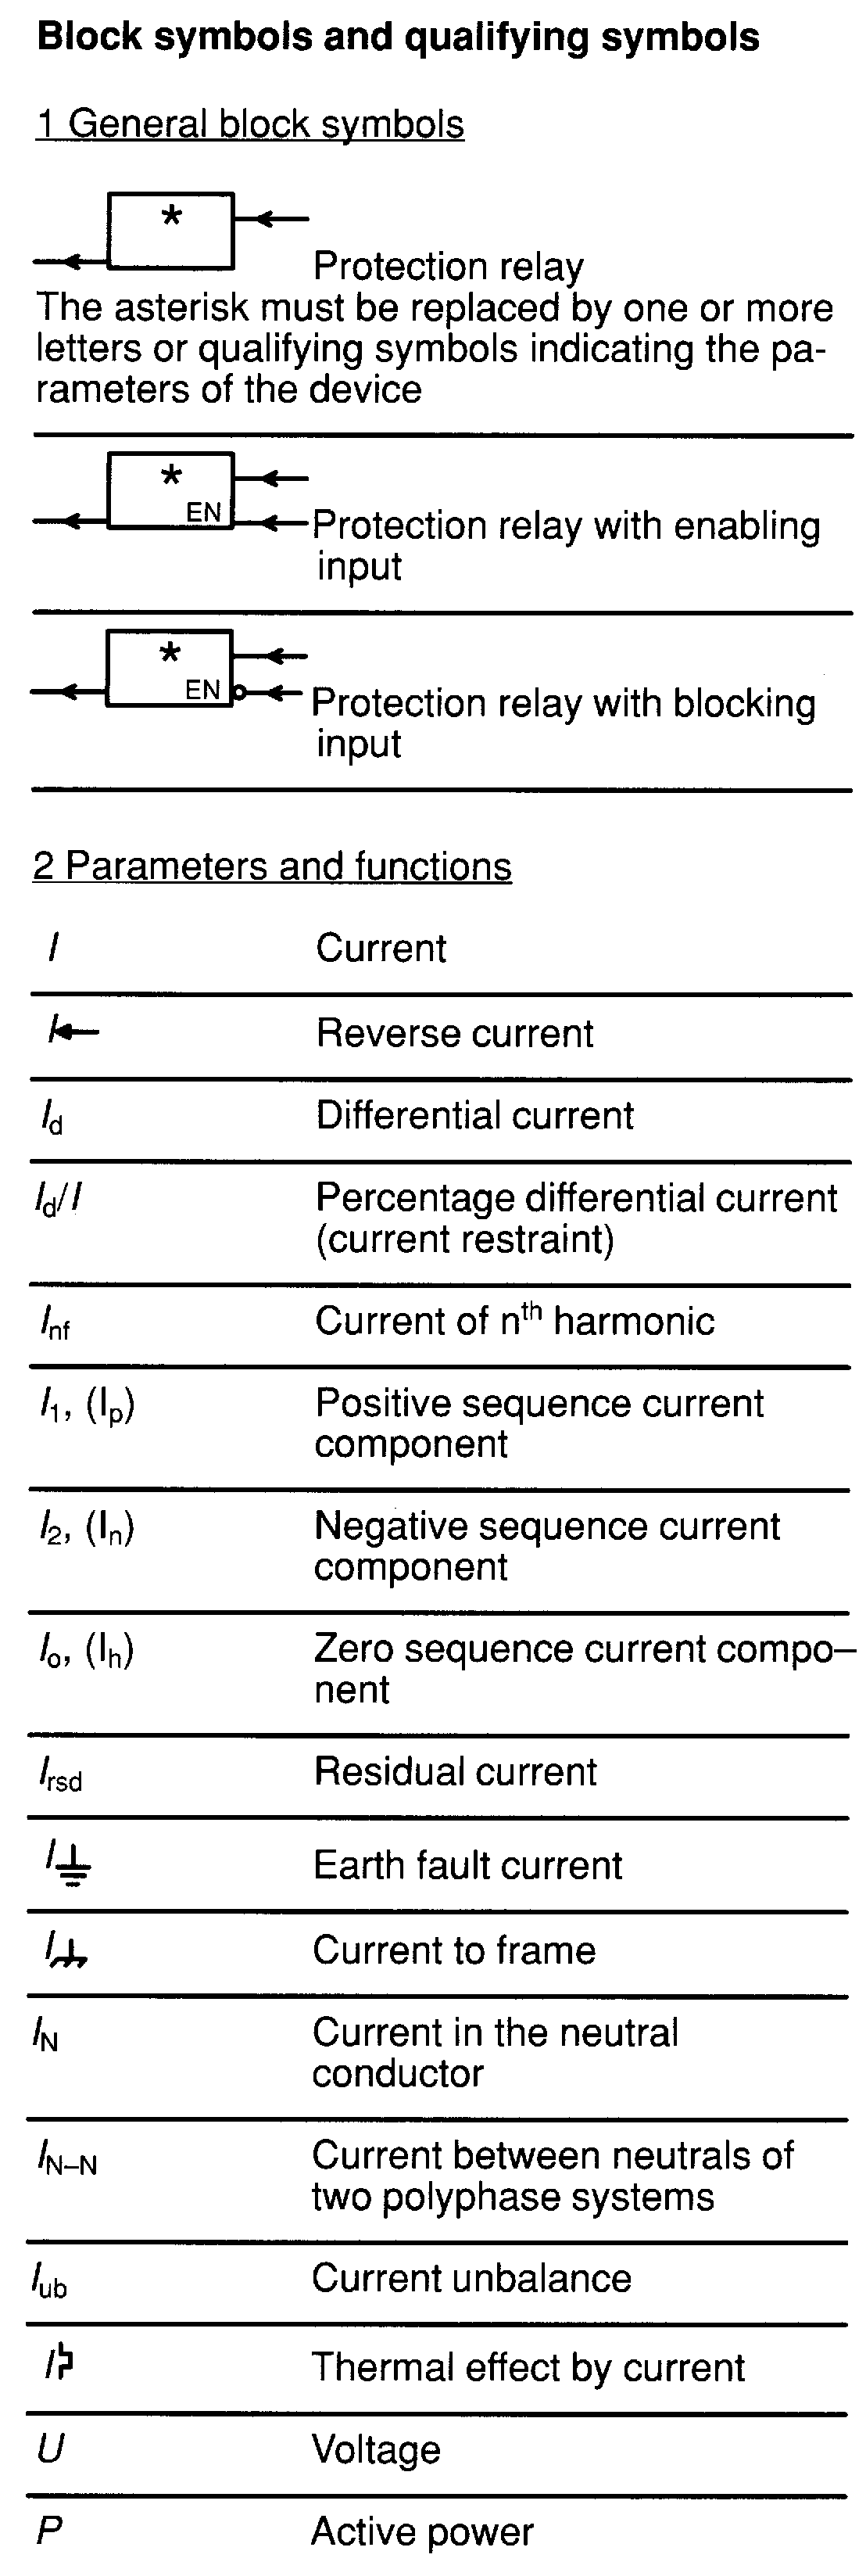 Relay symbols and device numbers; selection from iec 617